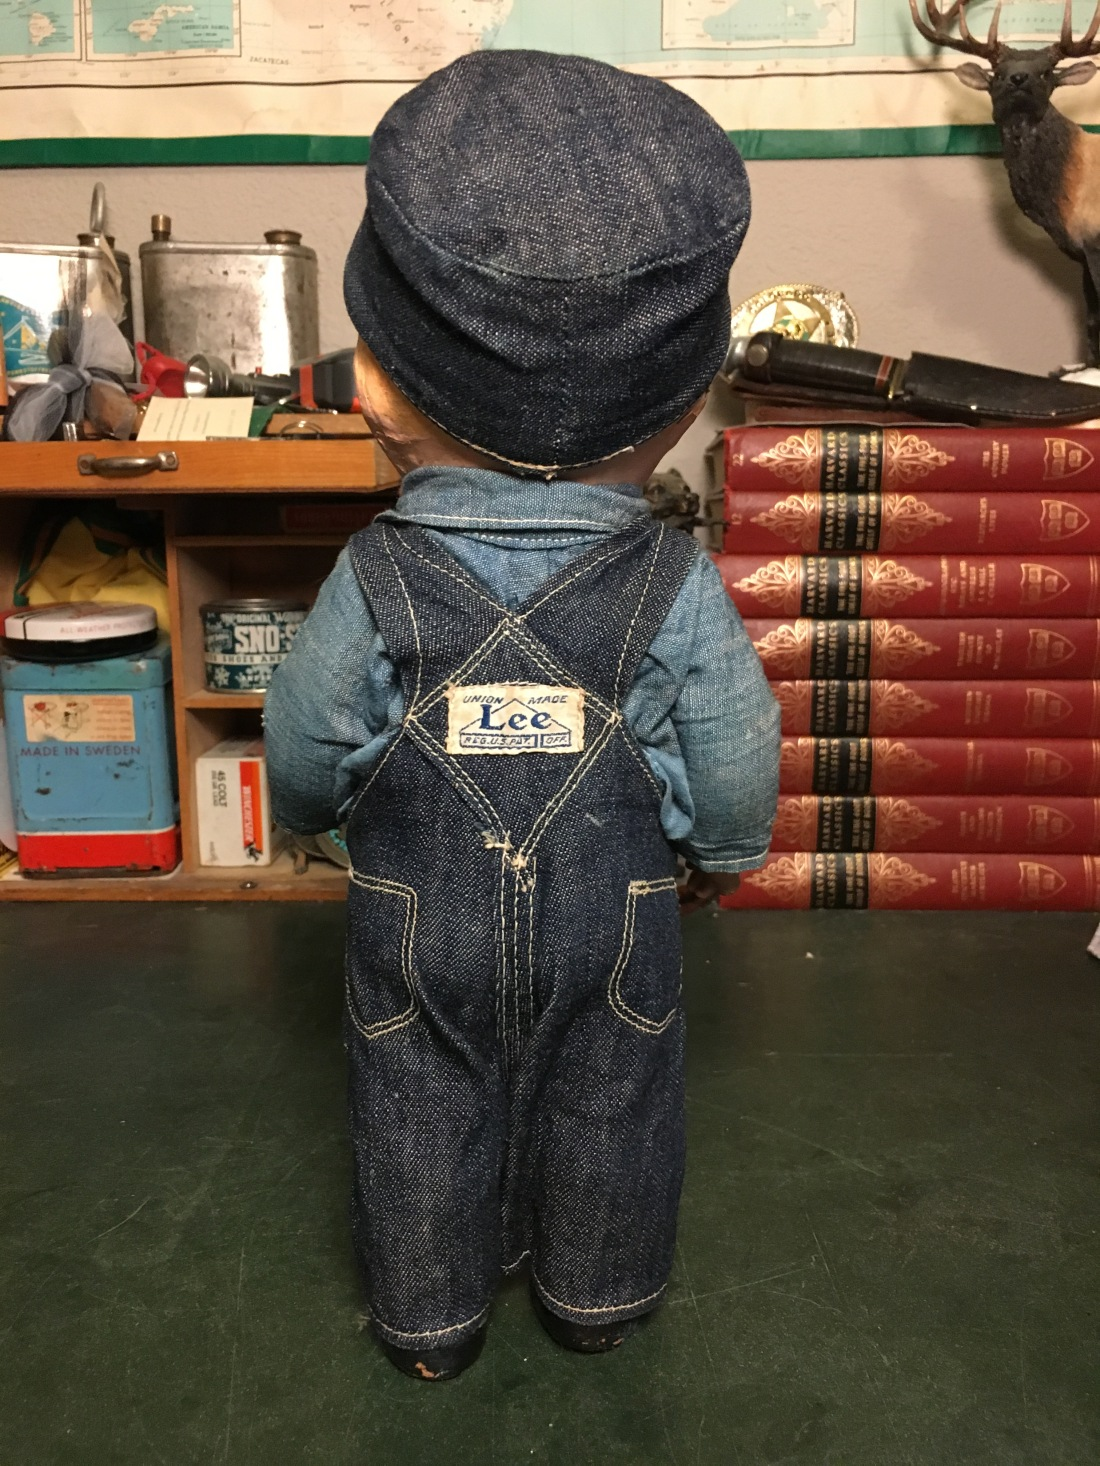 """Buddy Lee 13"""" Composition Doll in Lee Dungaree Overalls and Cap"""